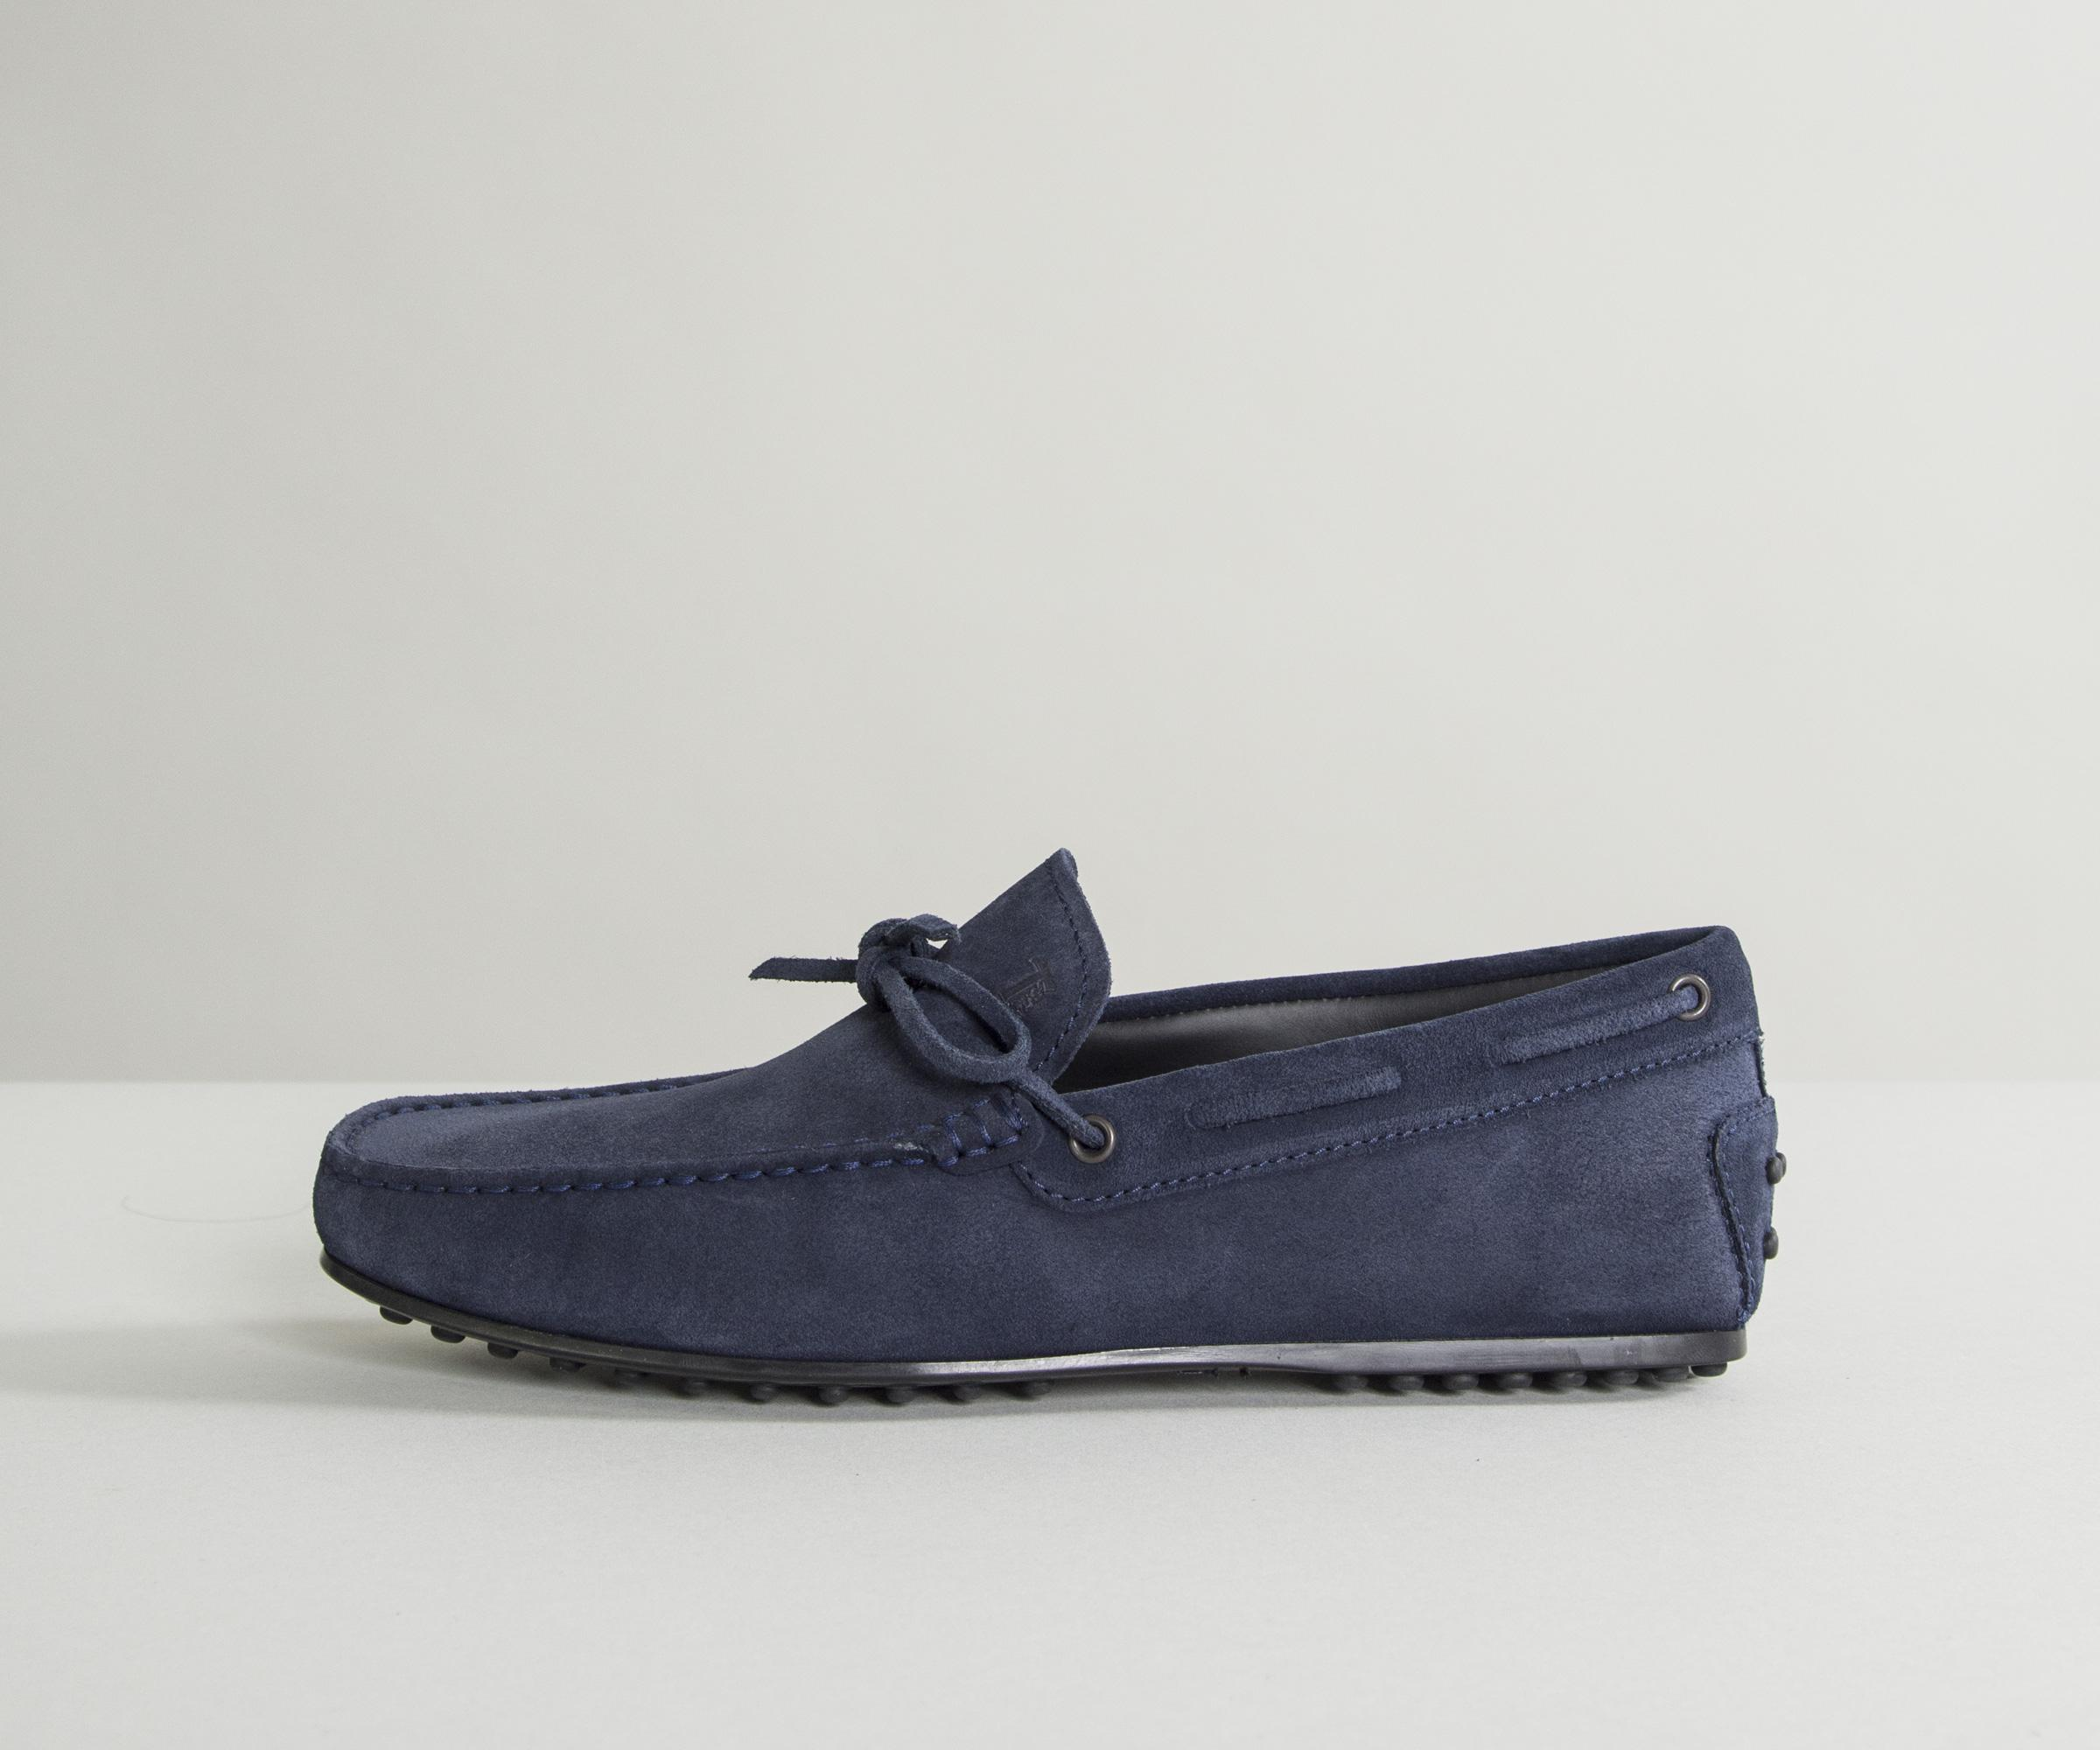 4a56c2b01e37f Tod's City Gommino Suede Driving Shoes Navy in Blue for Men - Lyst